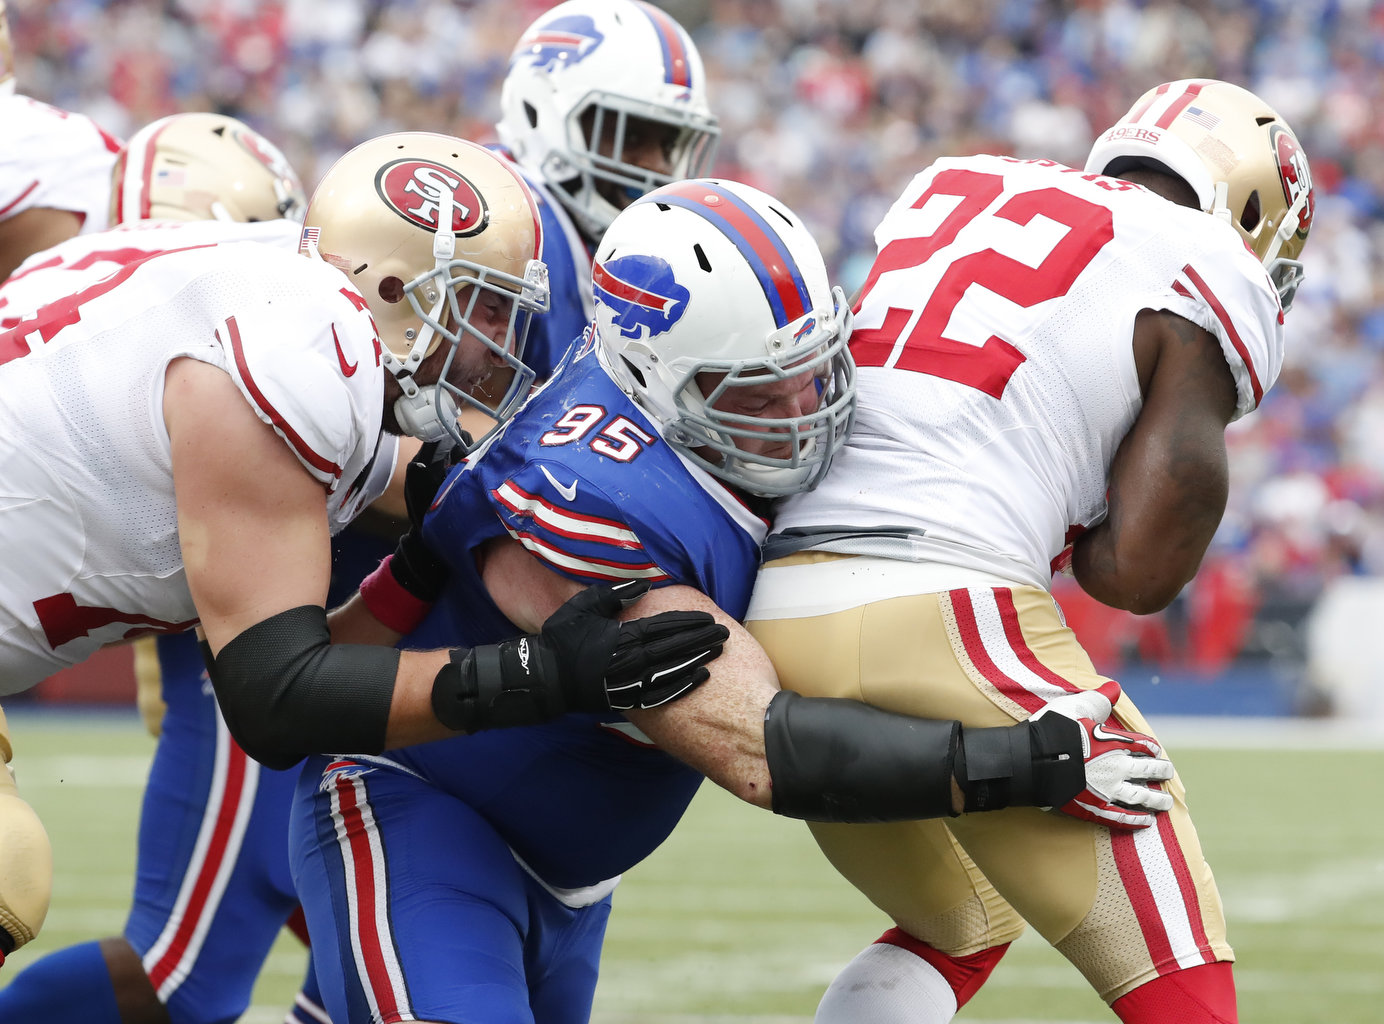 Buffalo Bills Kyle Williams makes a tackle against the San Francisco 49ers during the third quarter at New Era Field on Sunday, Oct. 16, 2016.  (Harry Scull Jr./Buffalo News)